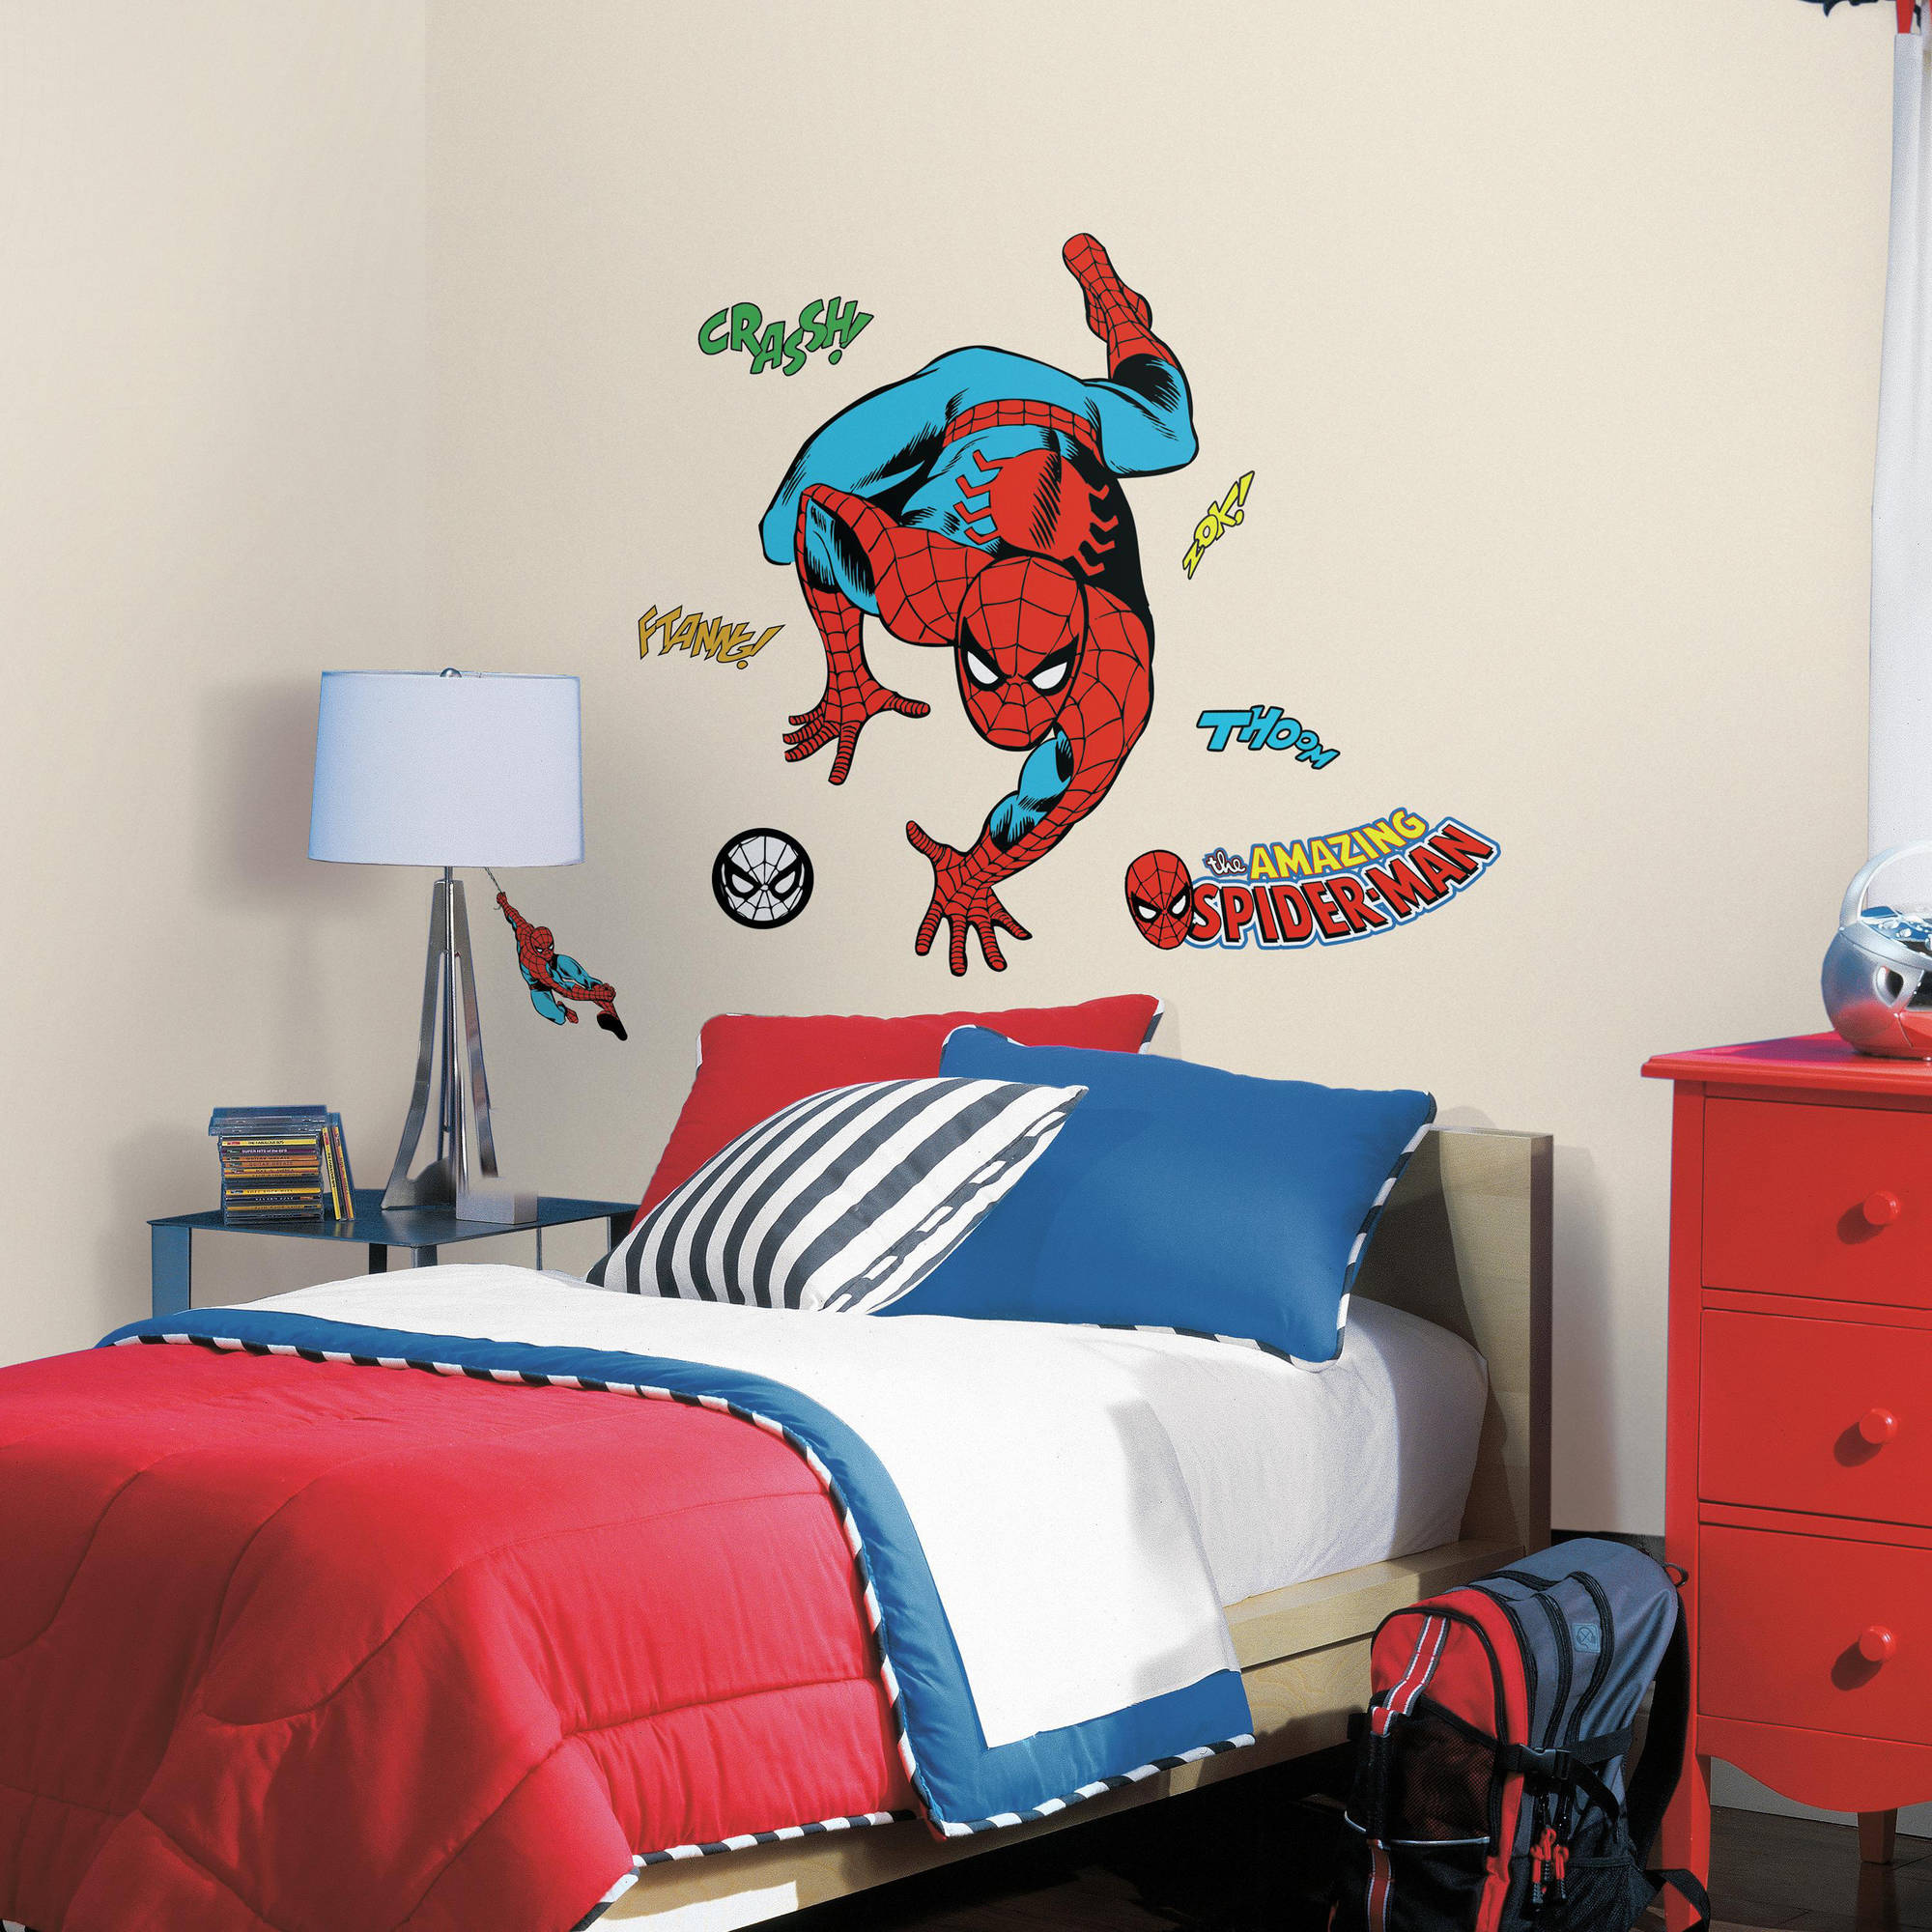 RoomMates Decor Classic Spider-Man Comic Peel-and-Stick Wall Decals